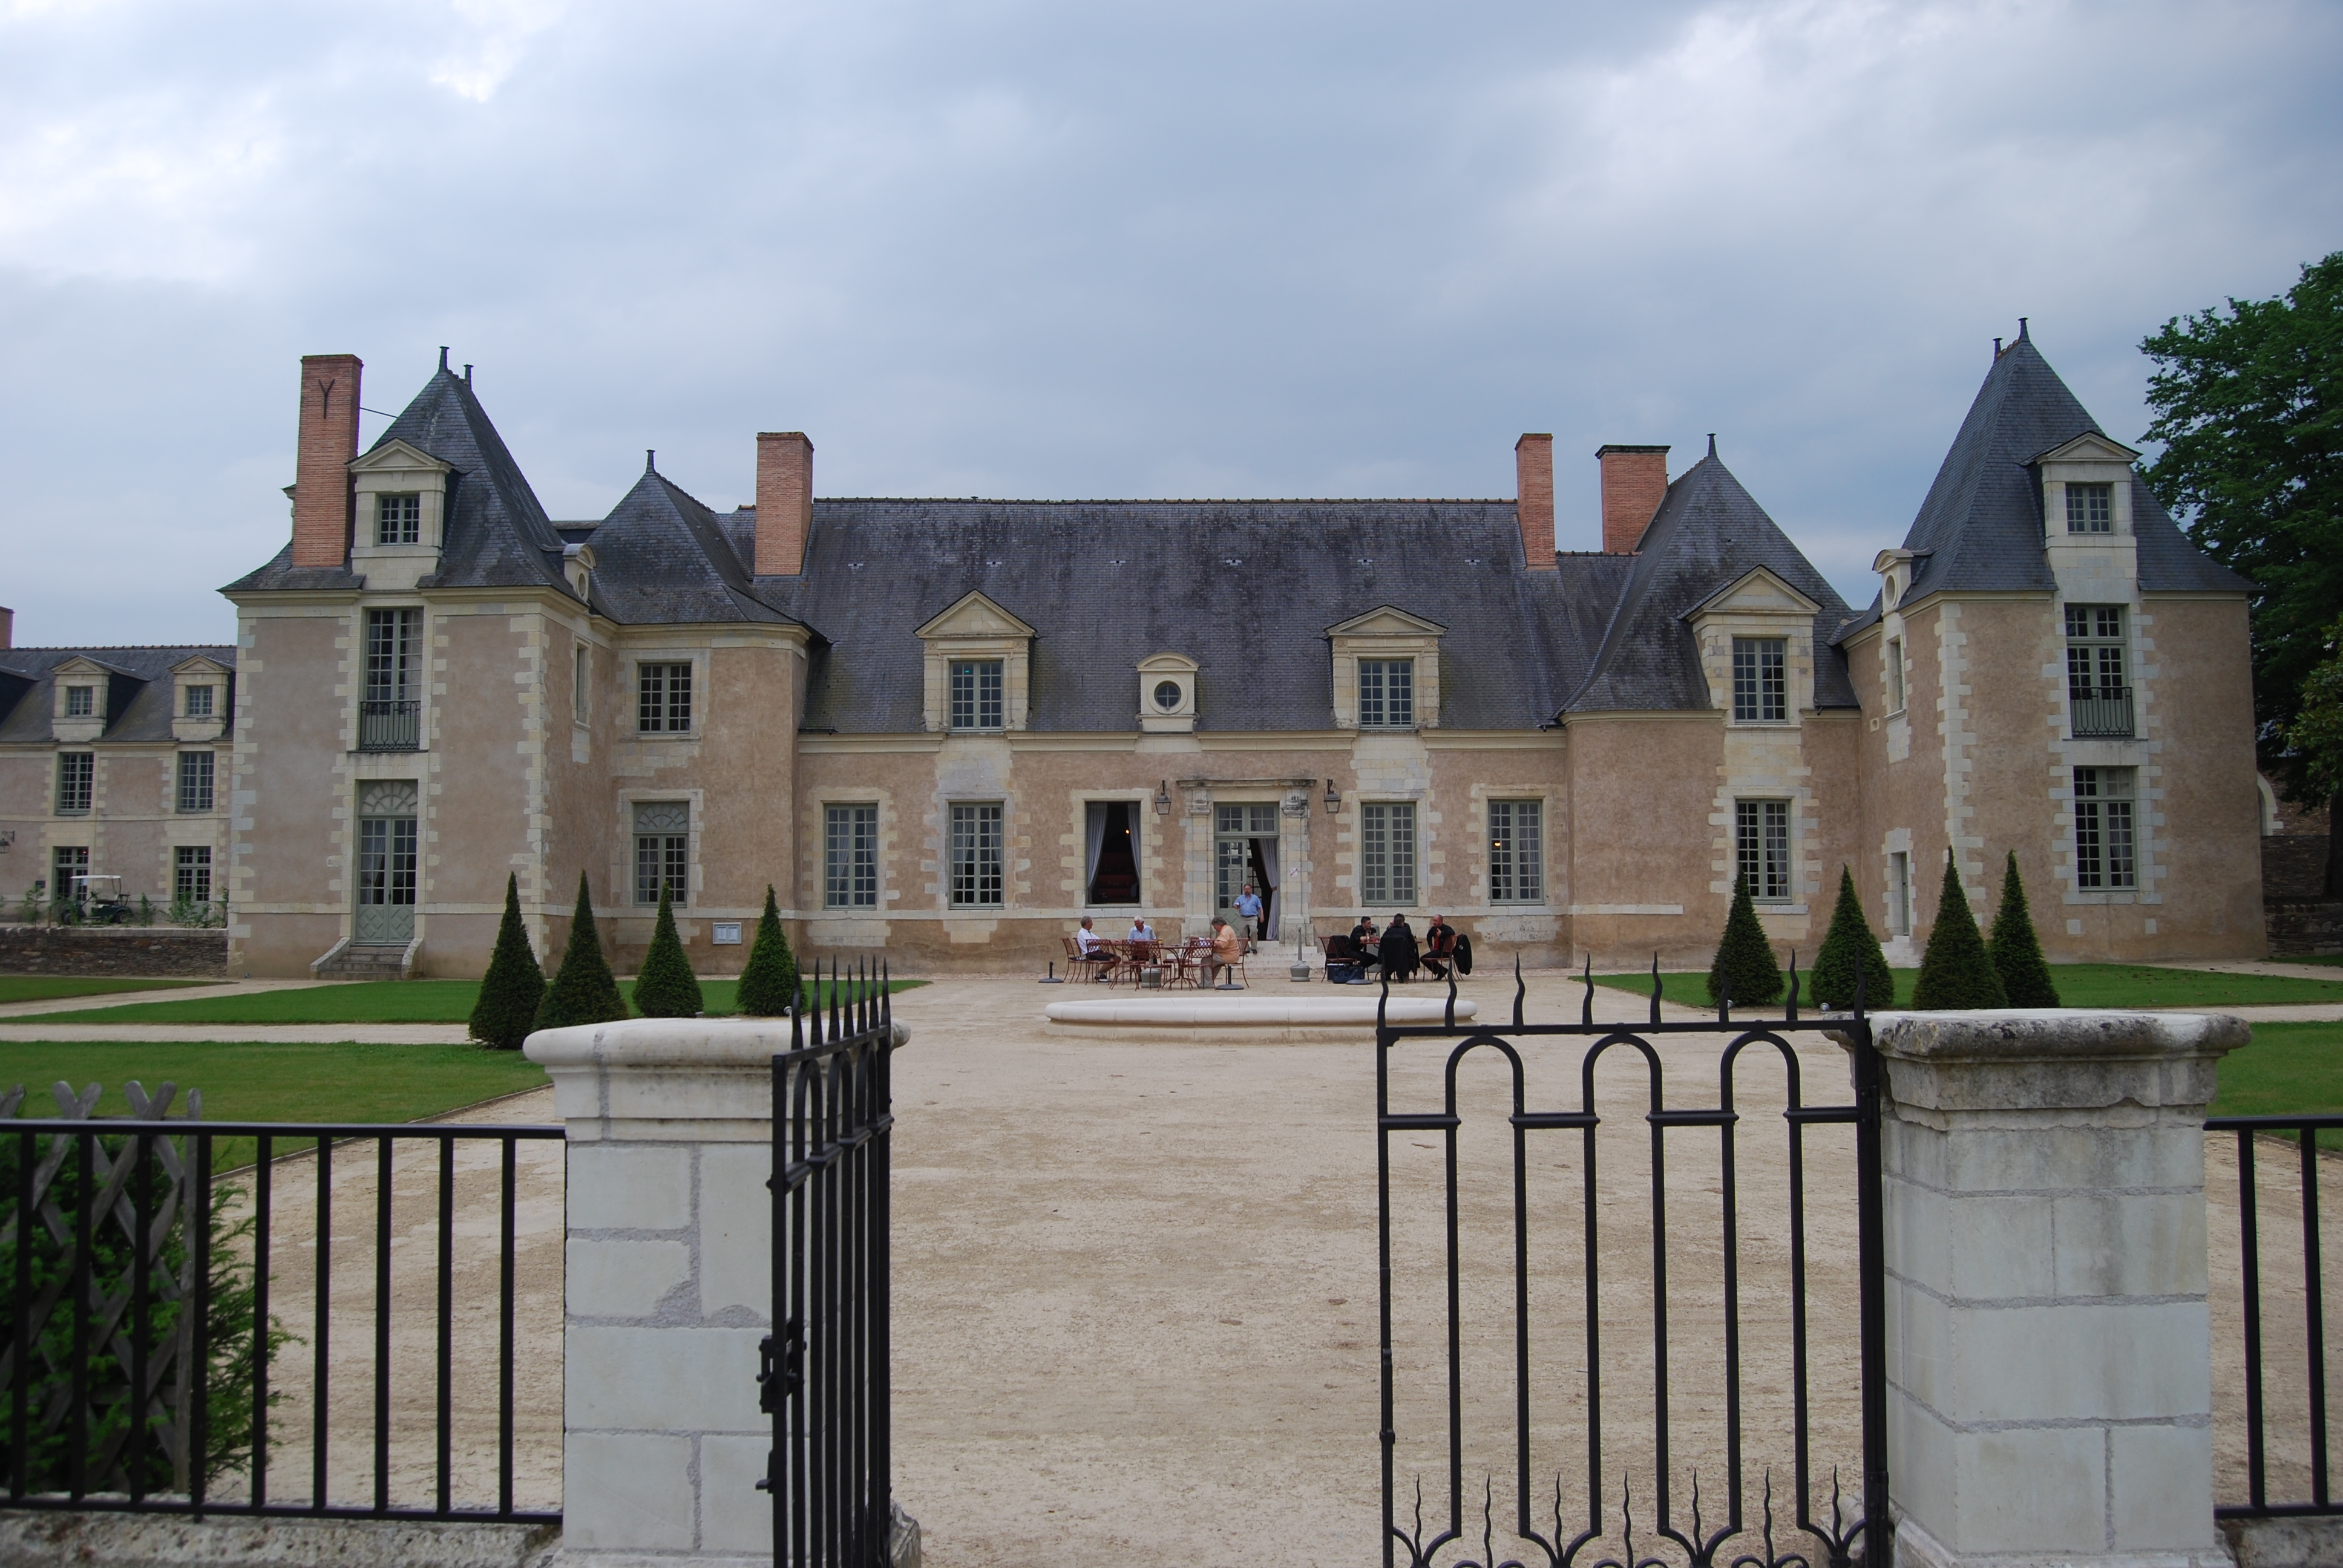 The Chateau de la Perriere, where the Giffard competition was held.